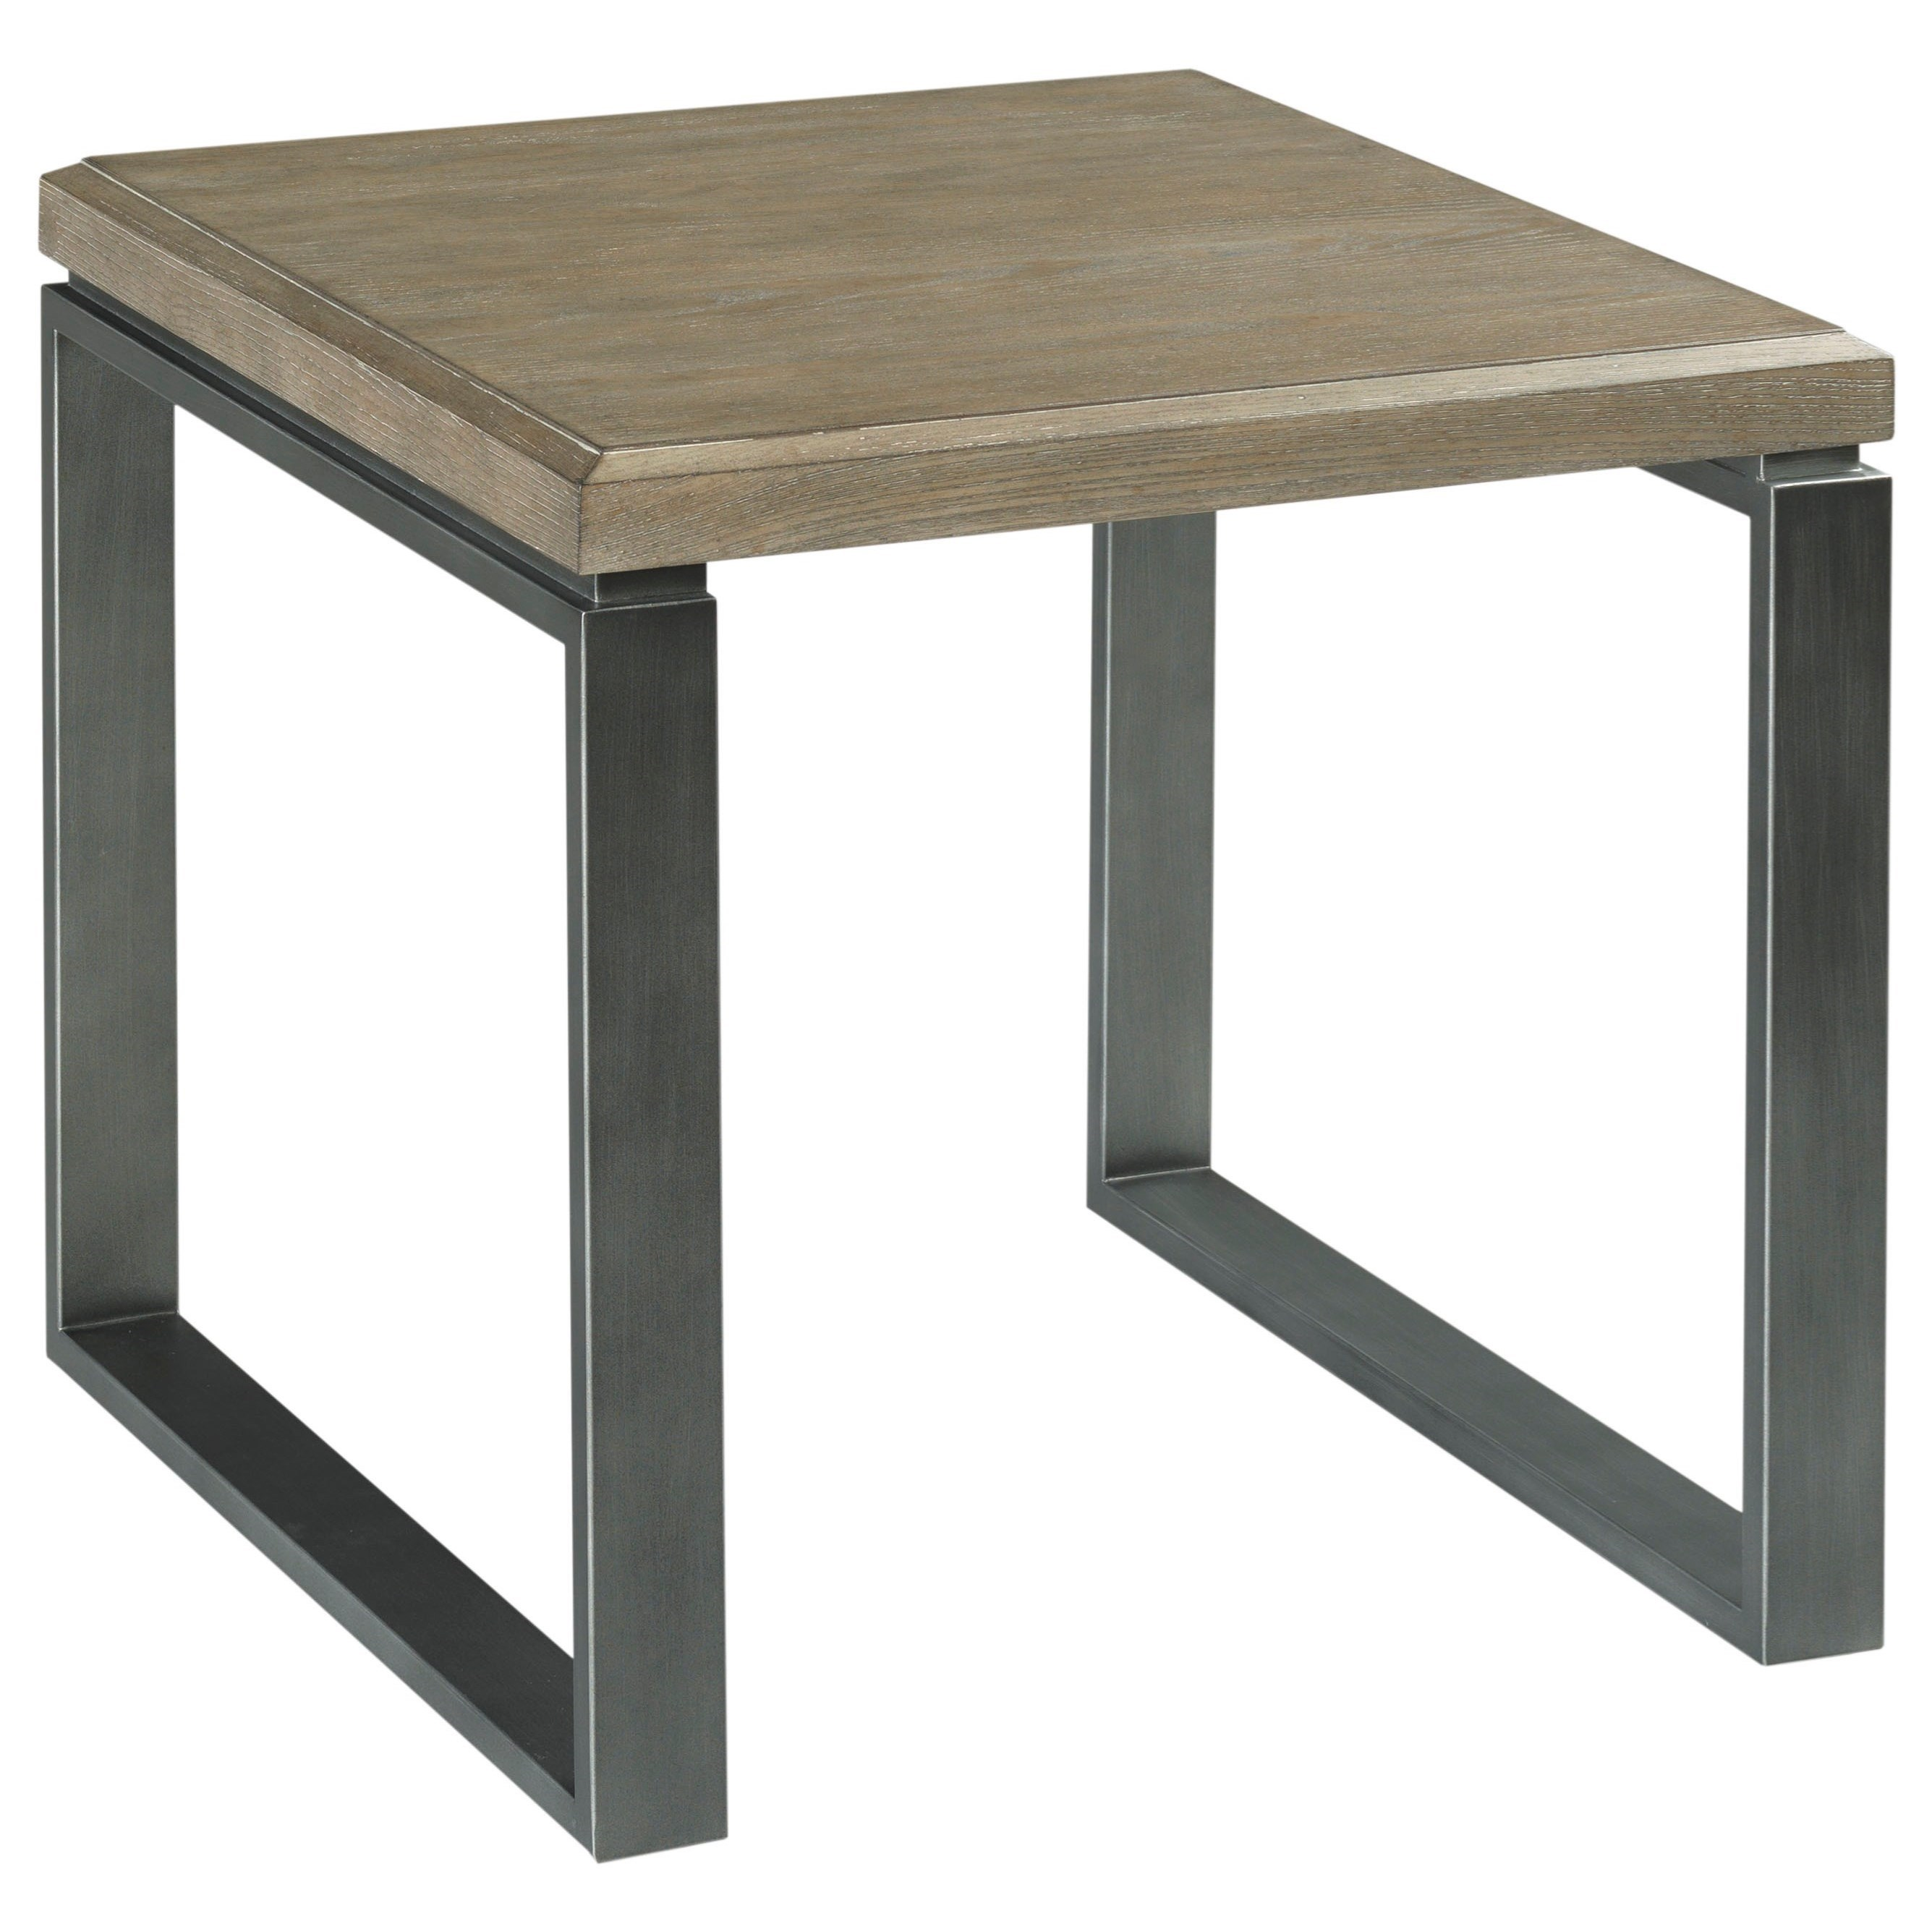 Ridgeview Rectangular End Table by Hammary at Stoney Creek Furniture